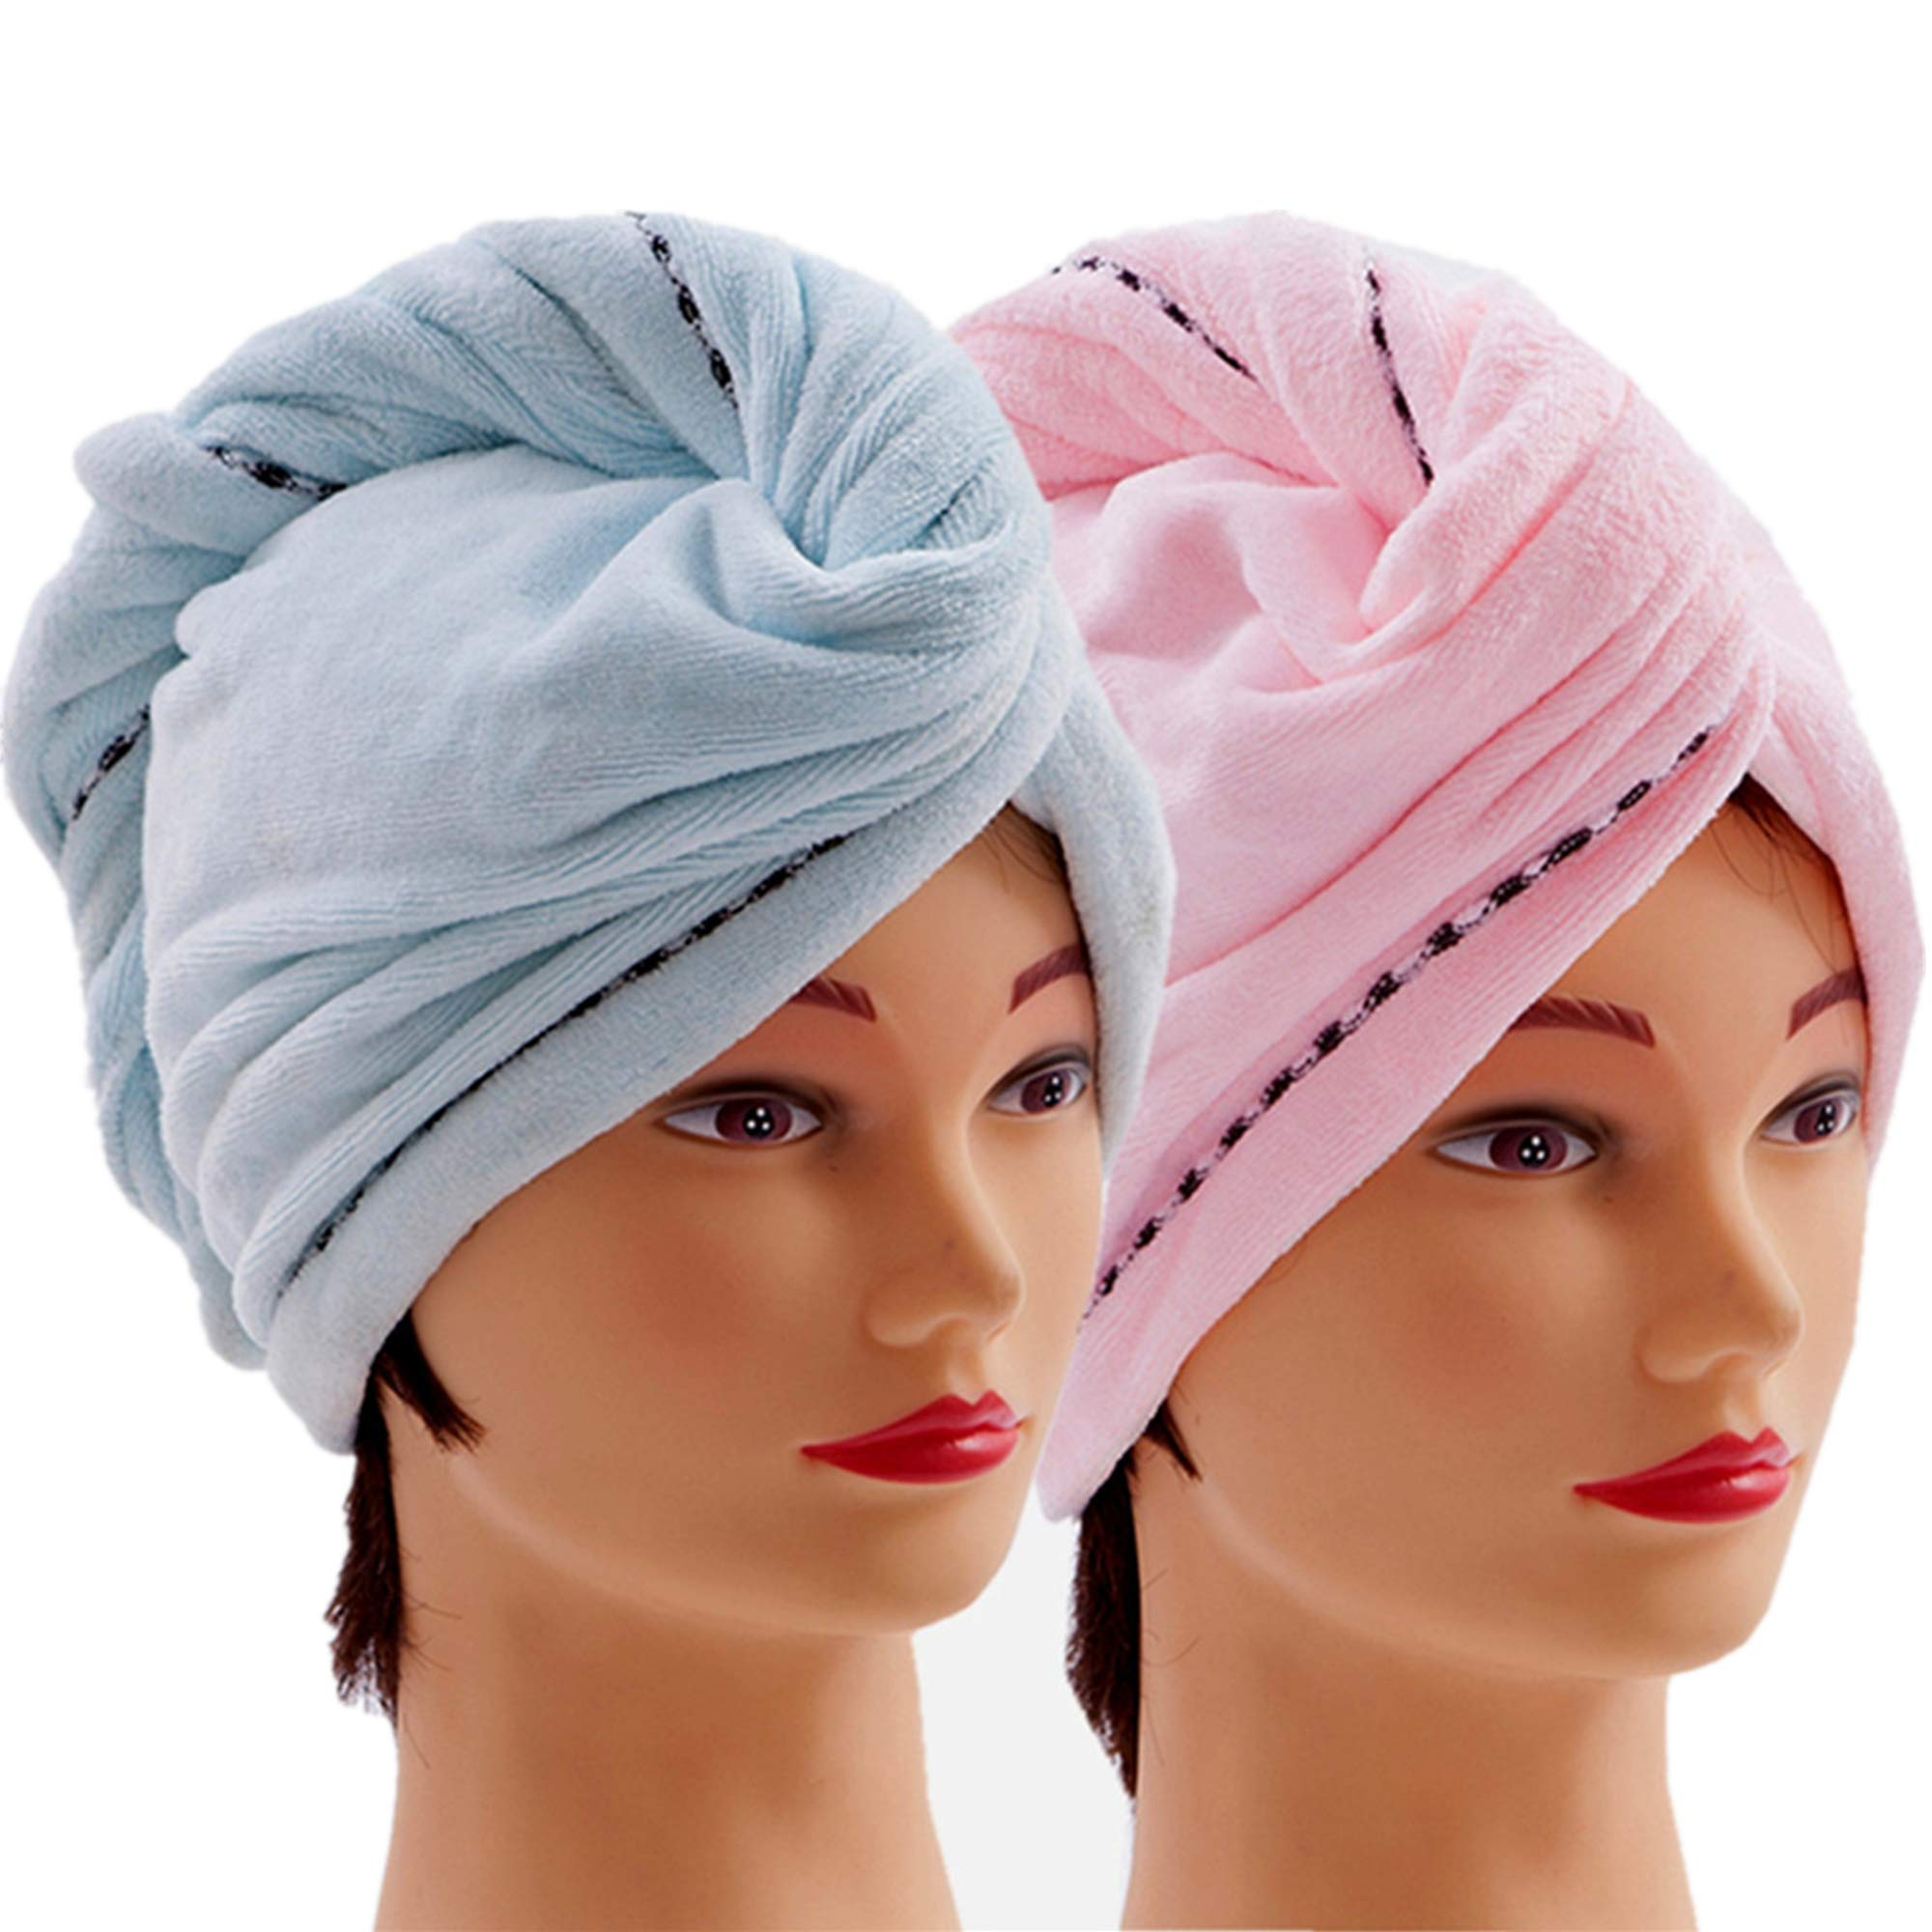 Microfiber Hair Towel Wrap 2 Pack Quick Magic Hair Dry Hat, Turban Twist Head Towel with Button, Quick Dry Super Absorbent for Long & Curly Hair, Anti-Frizz - (Blue & Pink) by CC CAIHONG